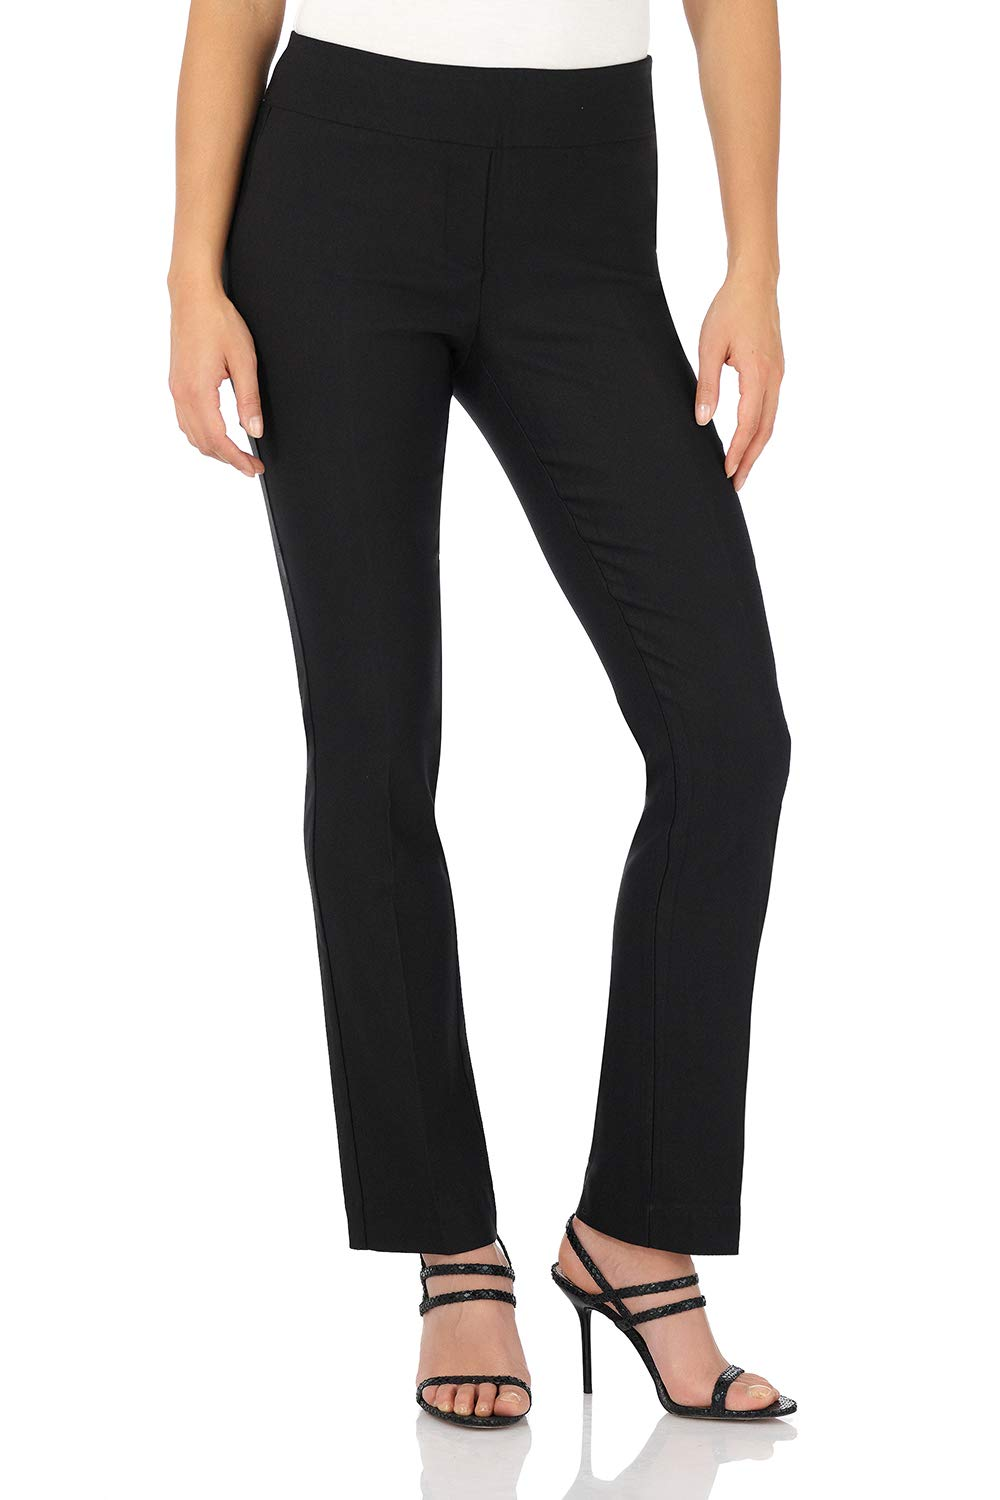 Rekucci Women's Ease Into Comfort Straight Leg Pant with Tummy Control